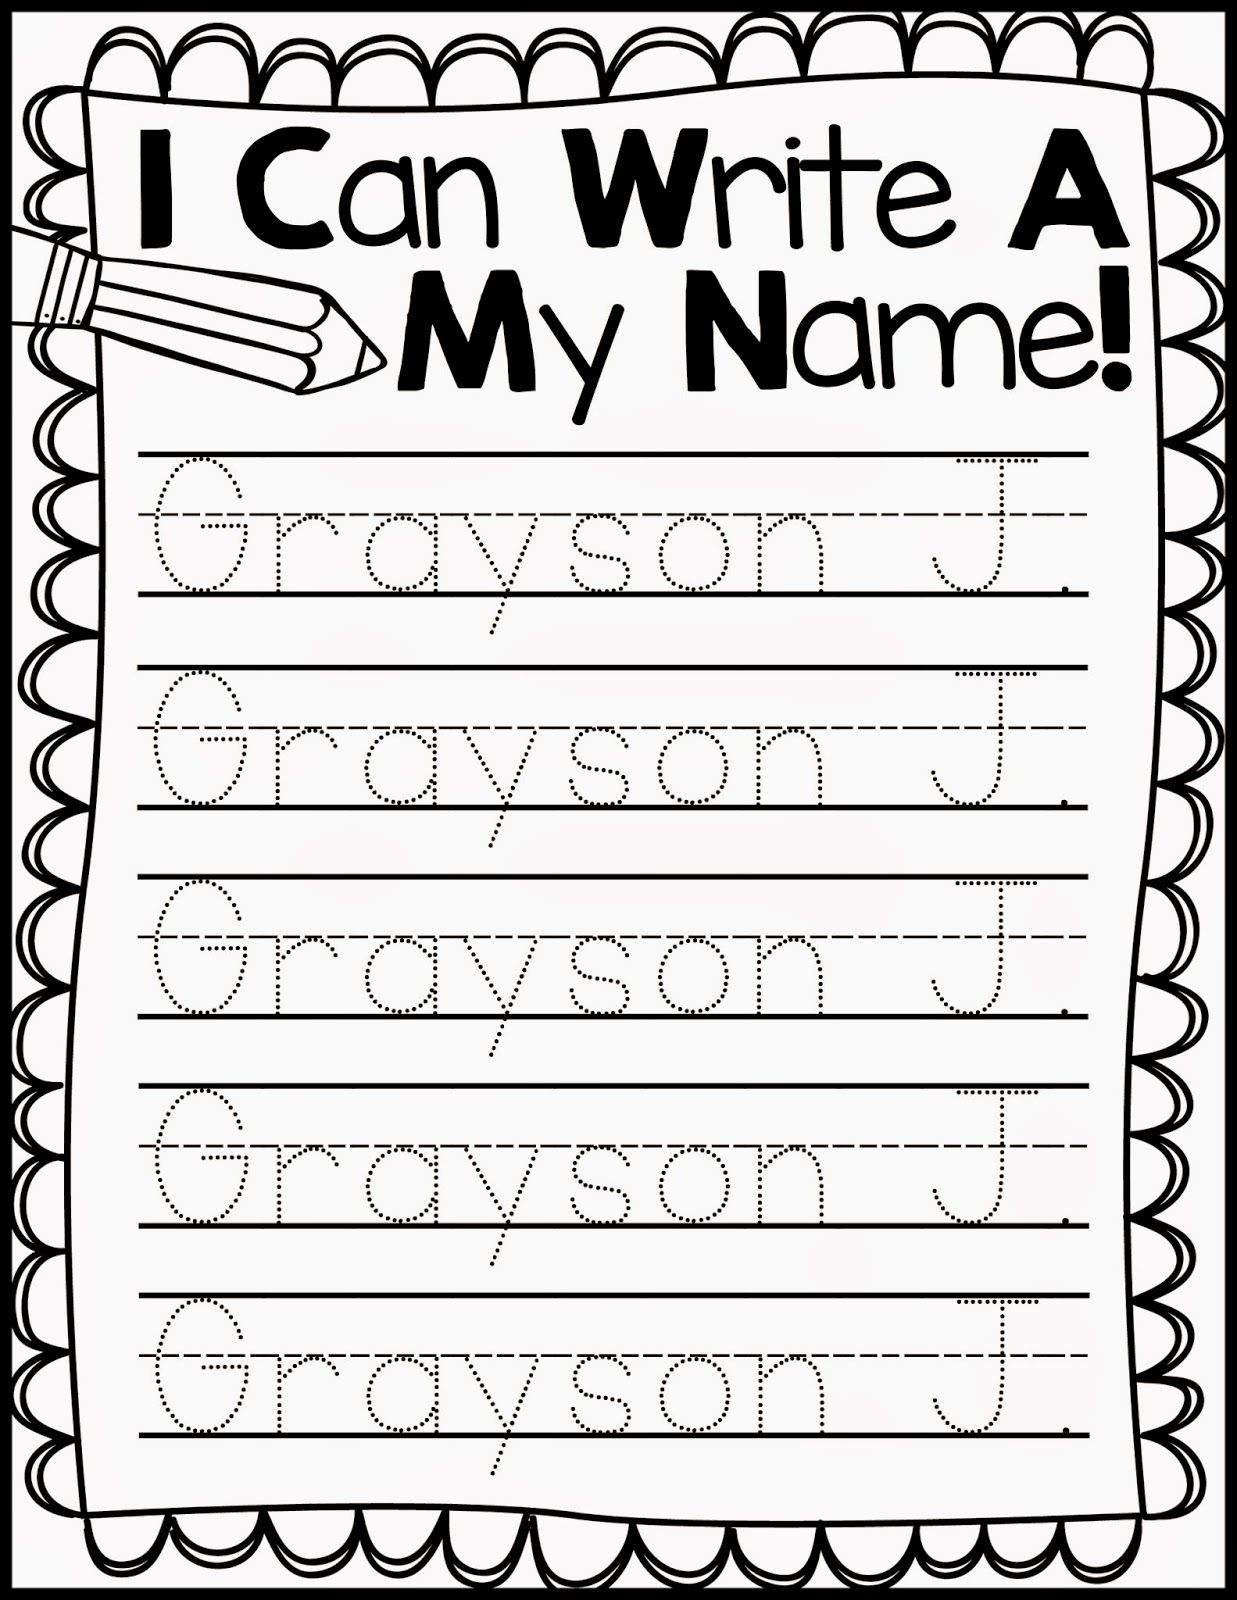 Freebie Friday* Name Handwriting Practice (With Images